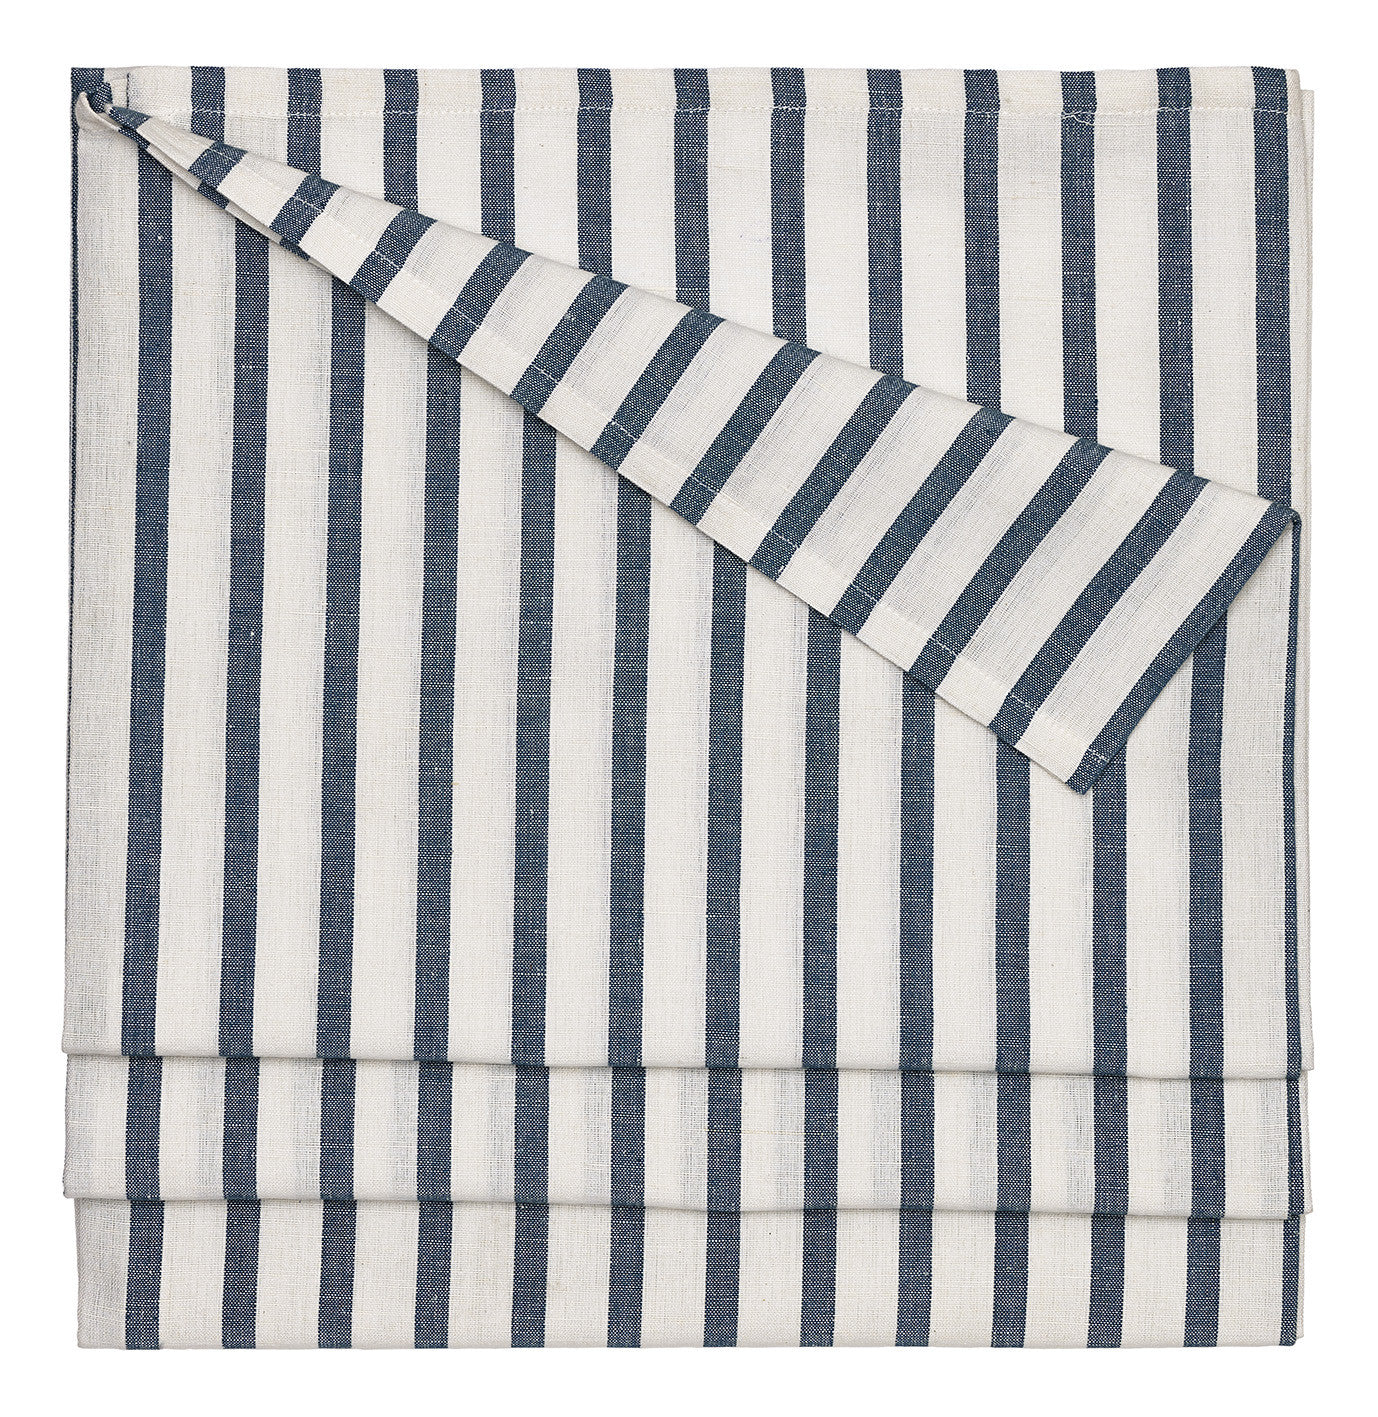 "Autumn Ticking Stripe Cotton Linen Tablecloth in Dark Petrol Blue 145x180cm (58x72"") Canada USA"